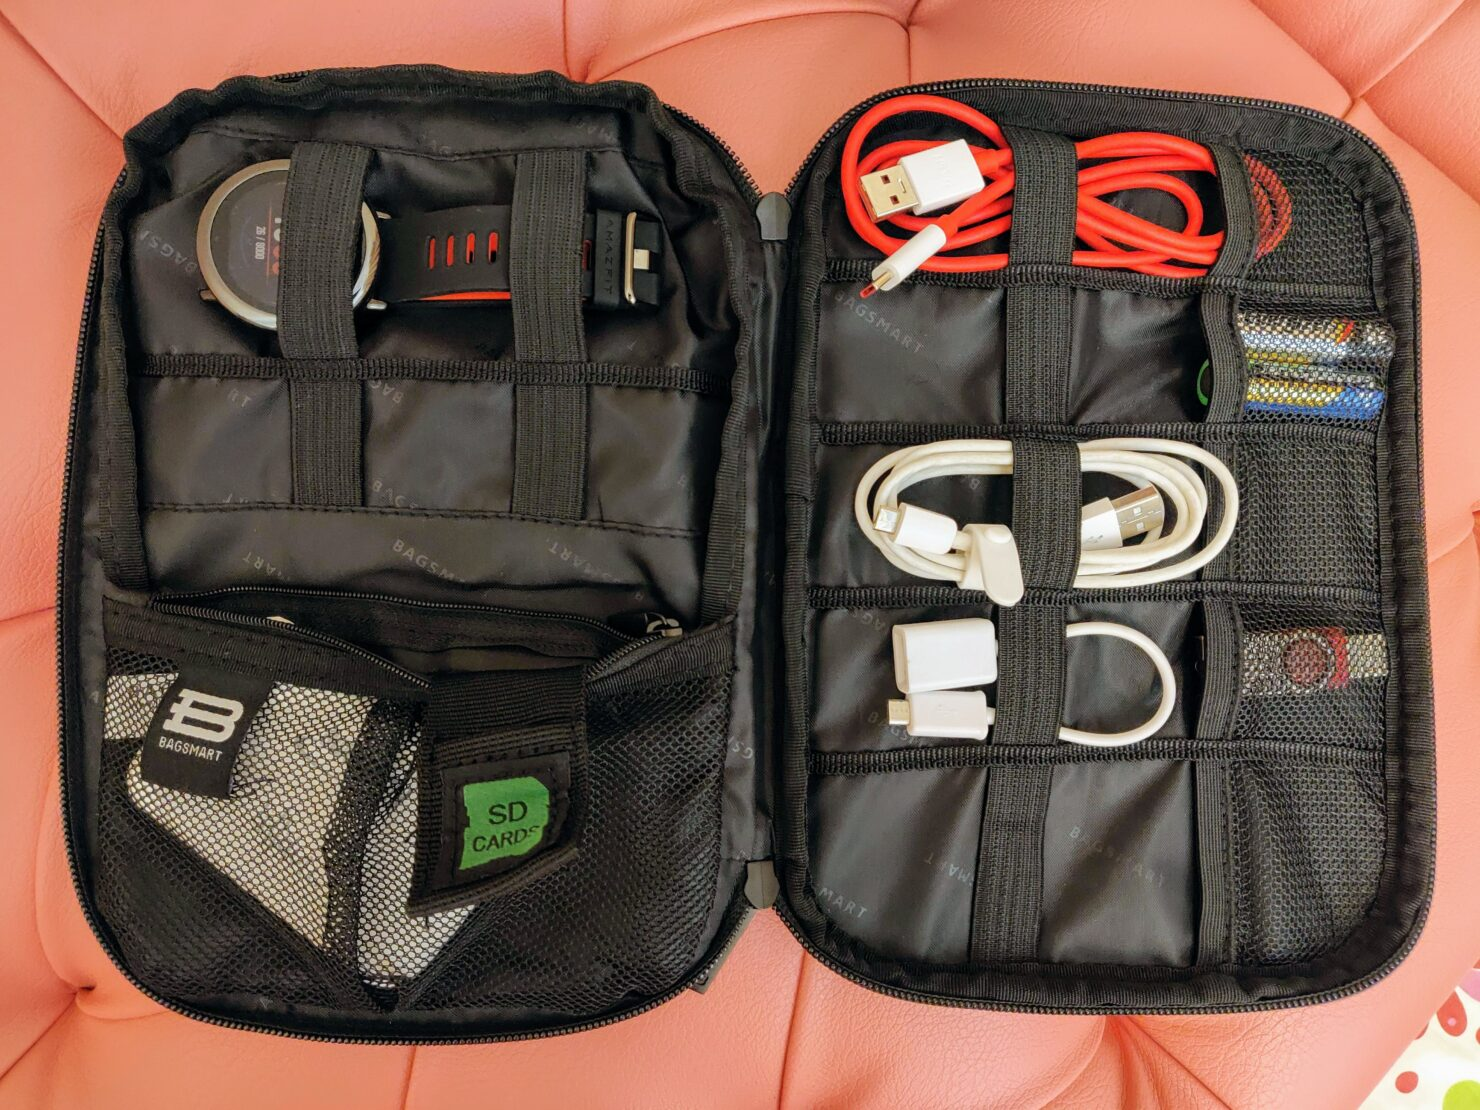 cable-organizing-bag